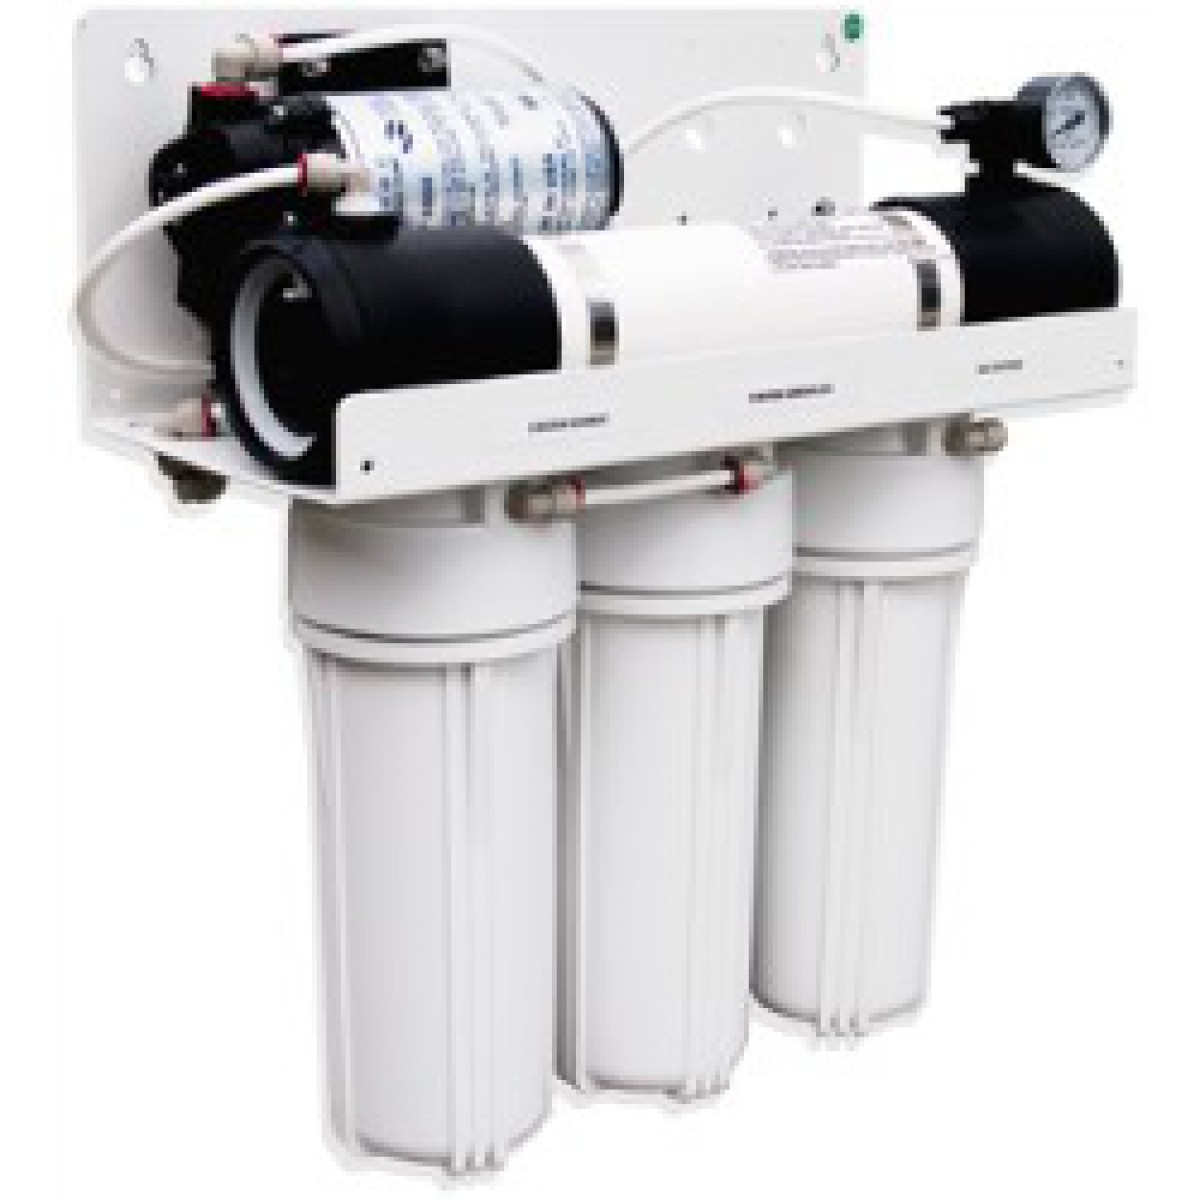 Titan Lt 200 Commercial Reverse Osmosis Filter System